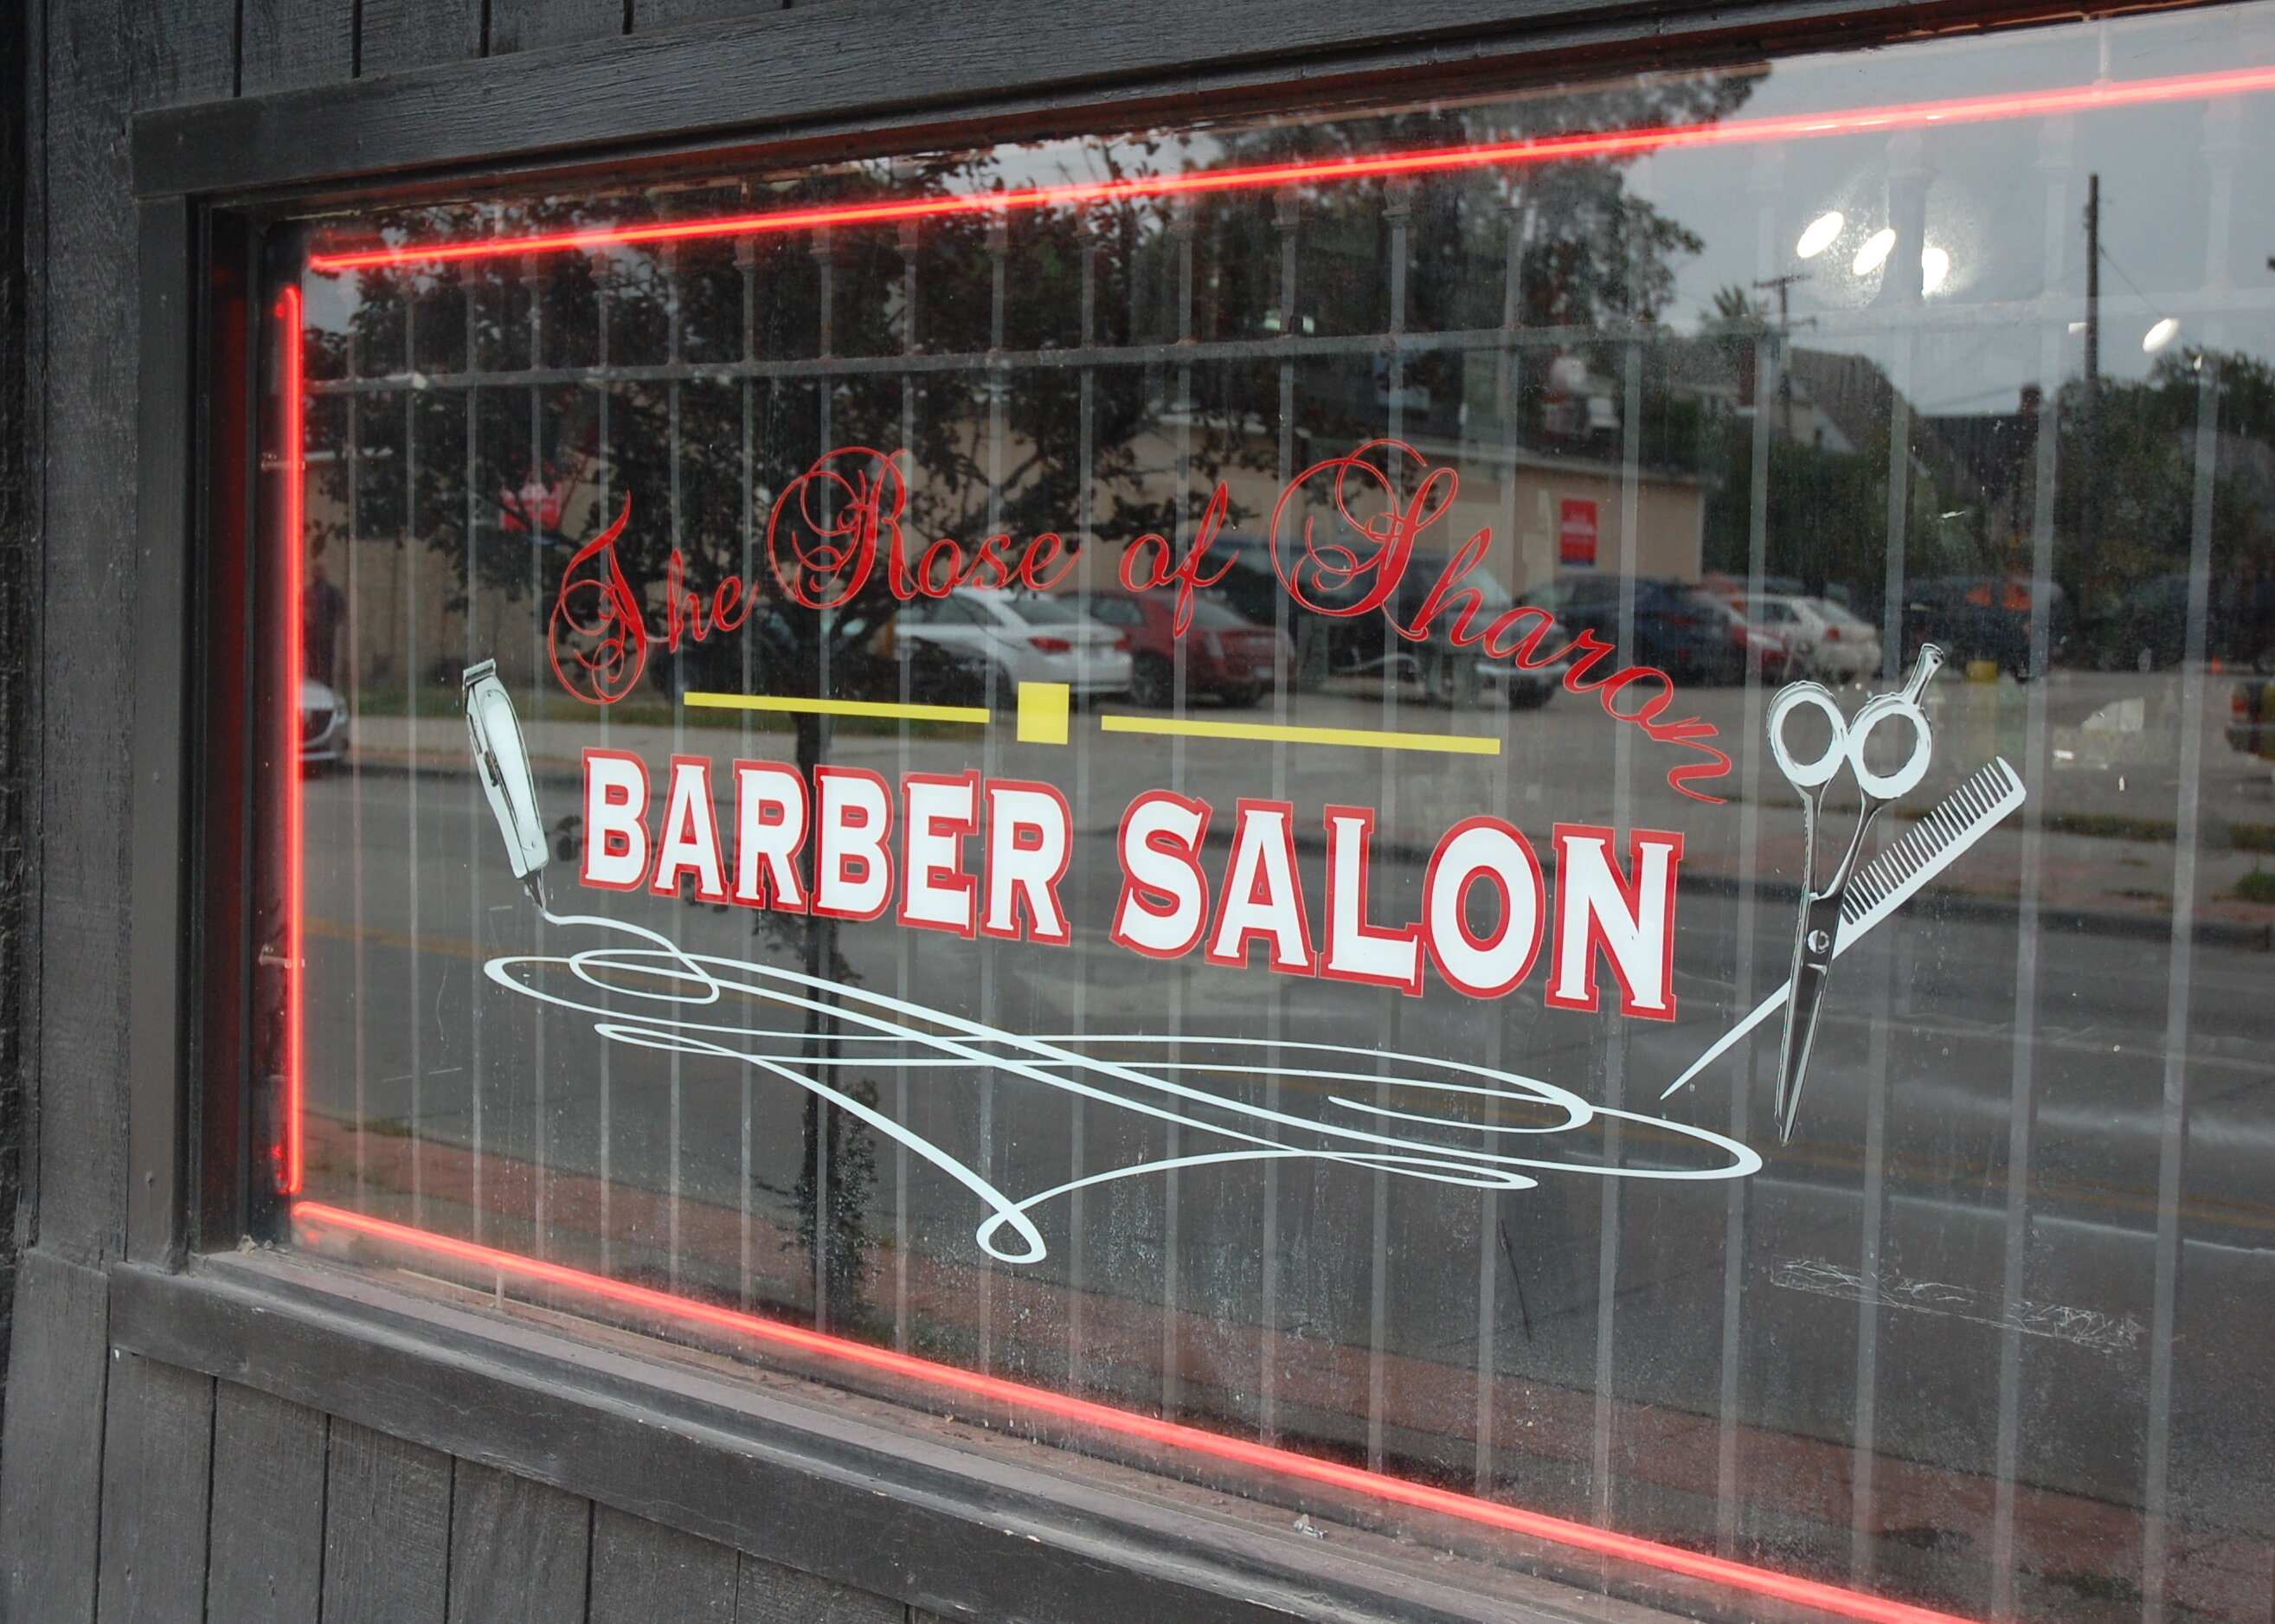 The Rose of Sharon Barber Salon is at 8231 Cedar Ave. in Cleveland's Fairfax neighborhood.